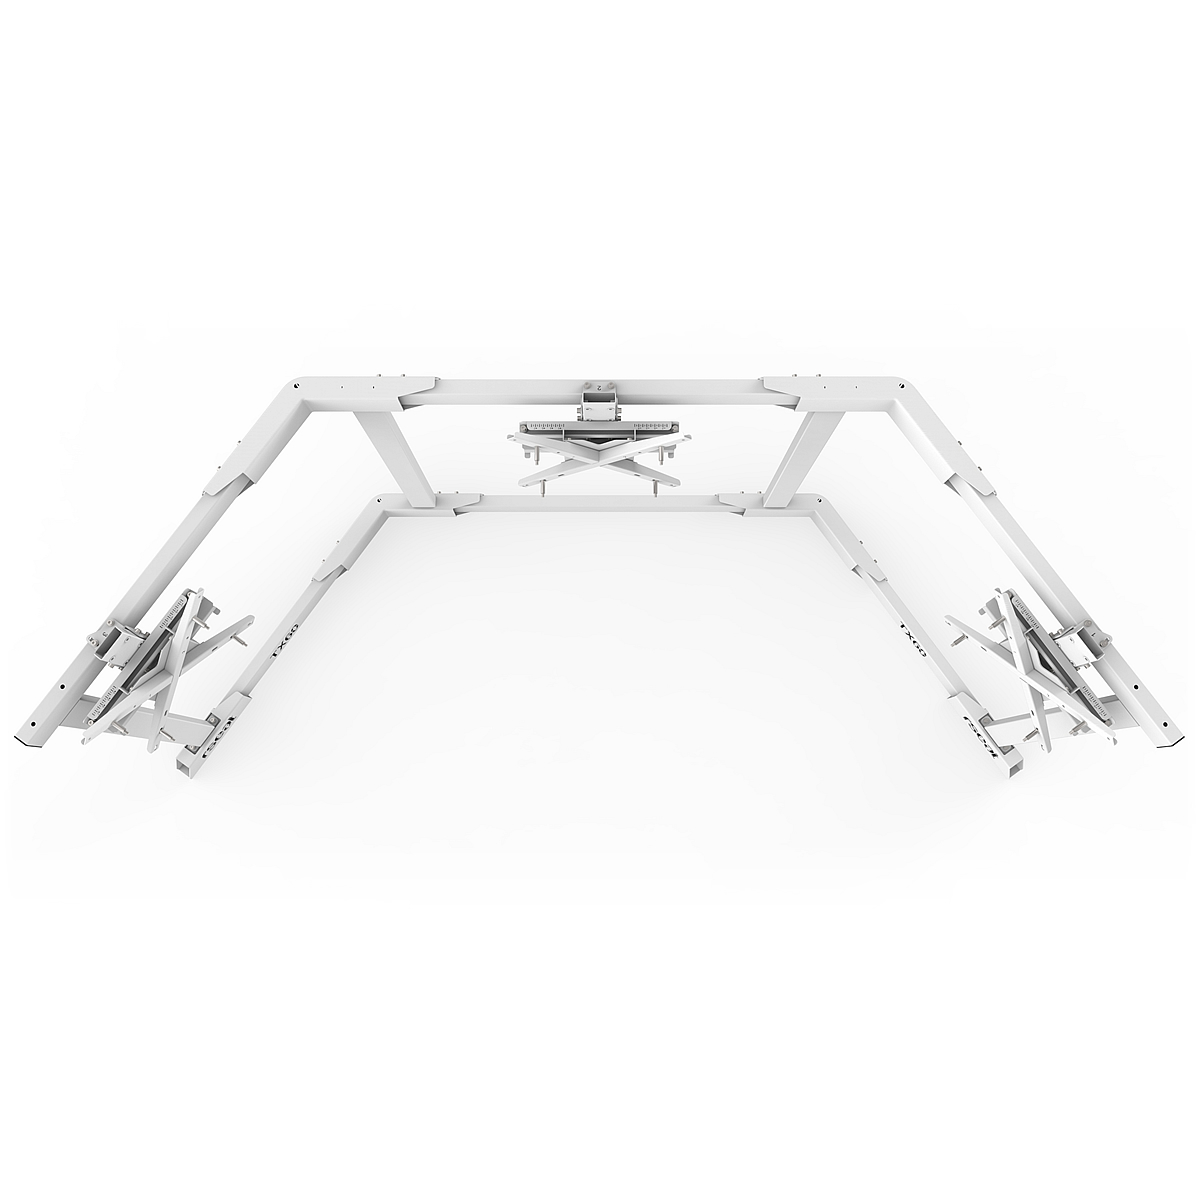 TX60 - Triple 43-60inch TV/Monitor Stand White